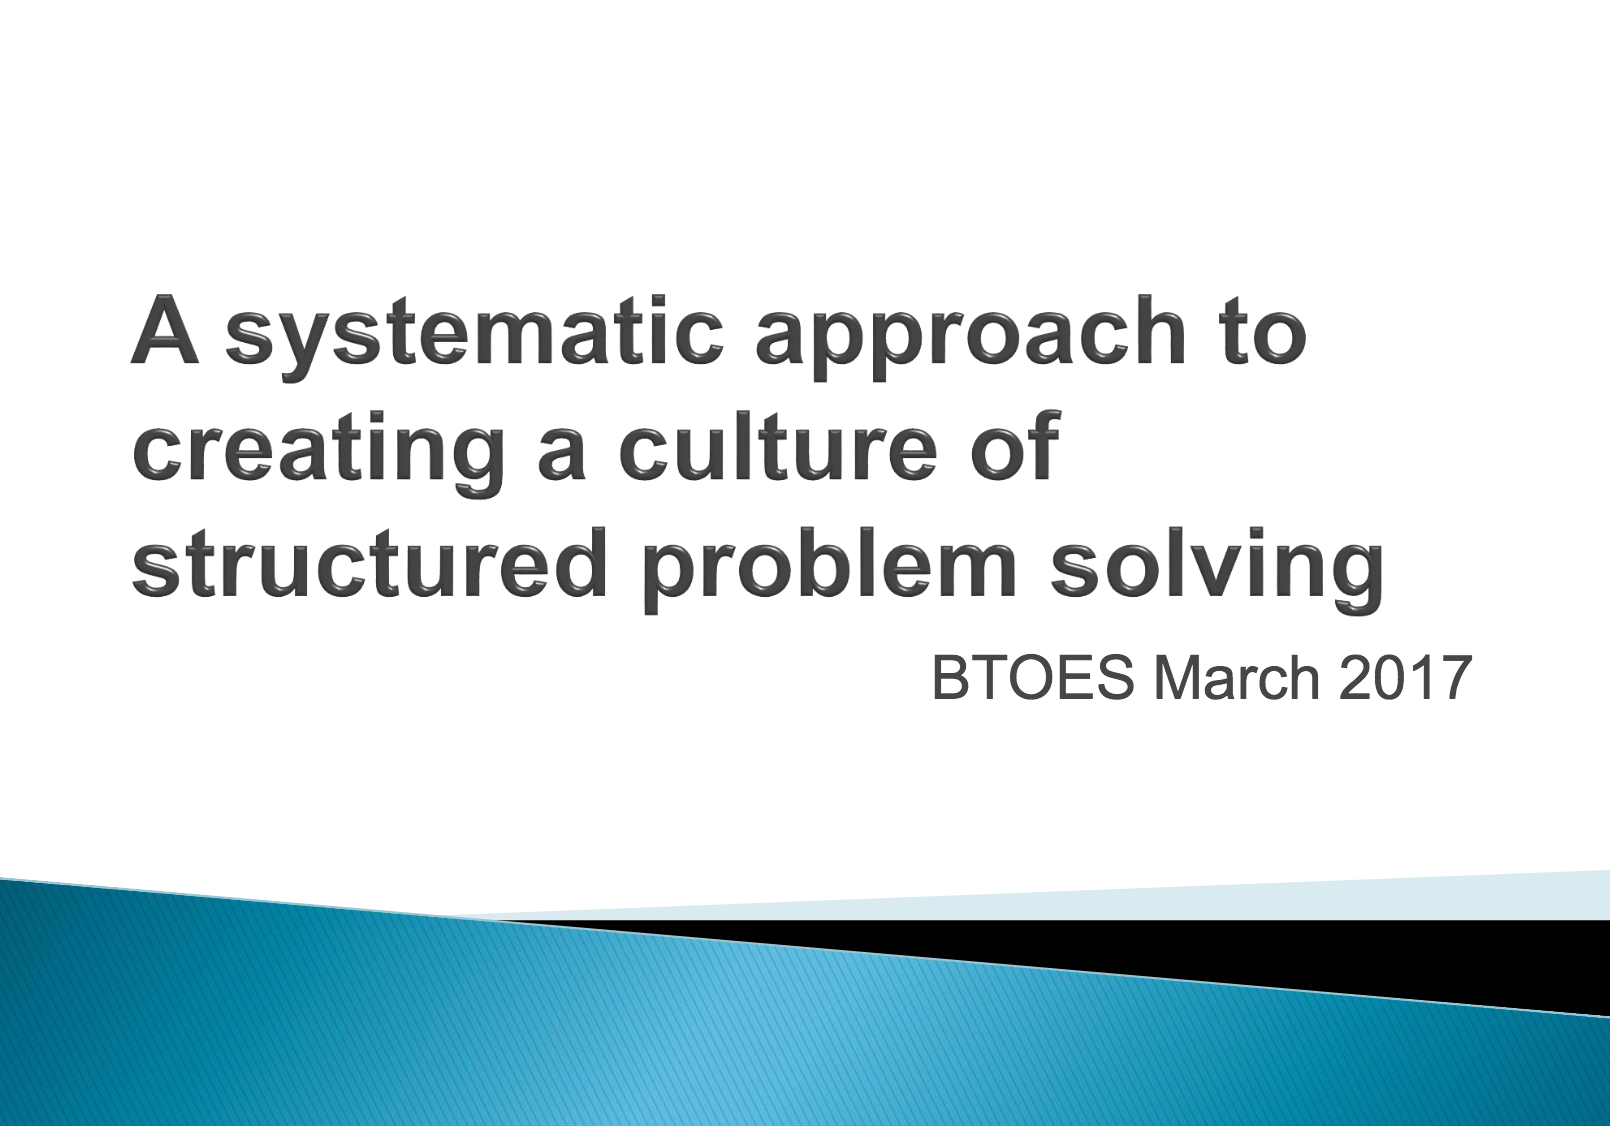 A systematic approach to creating a culture of structured problem solving